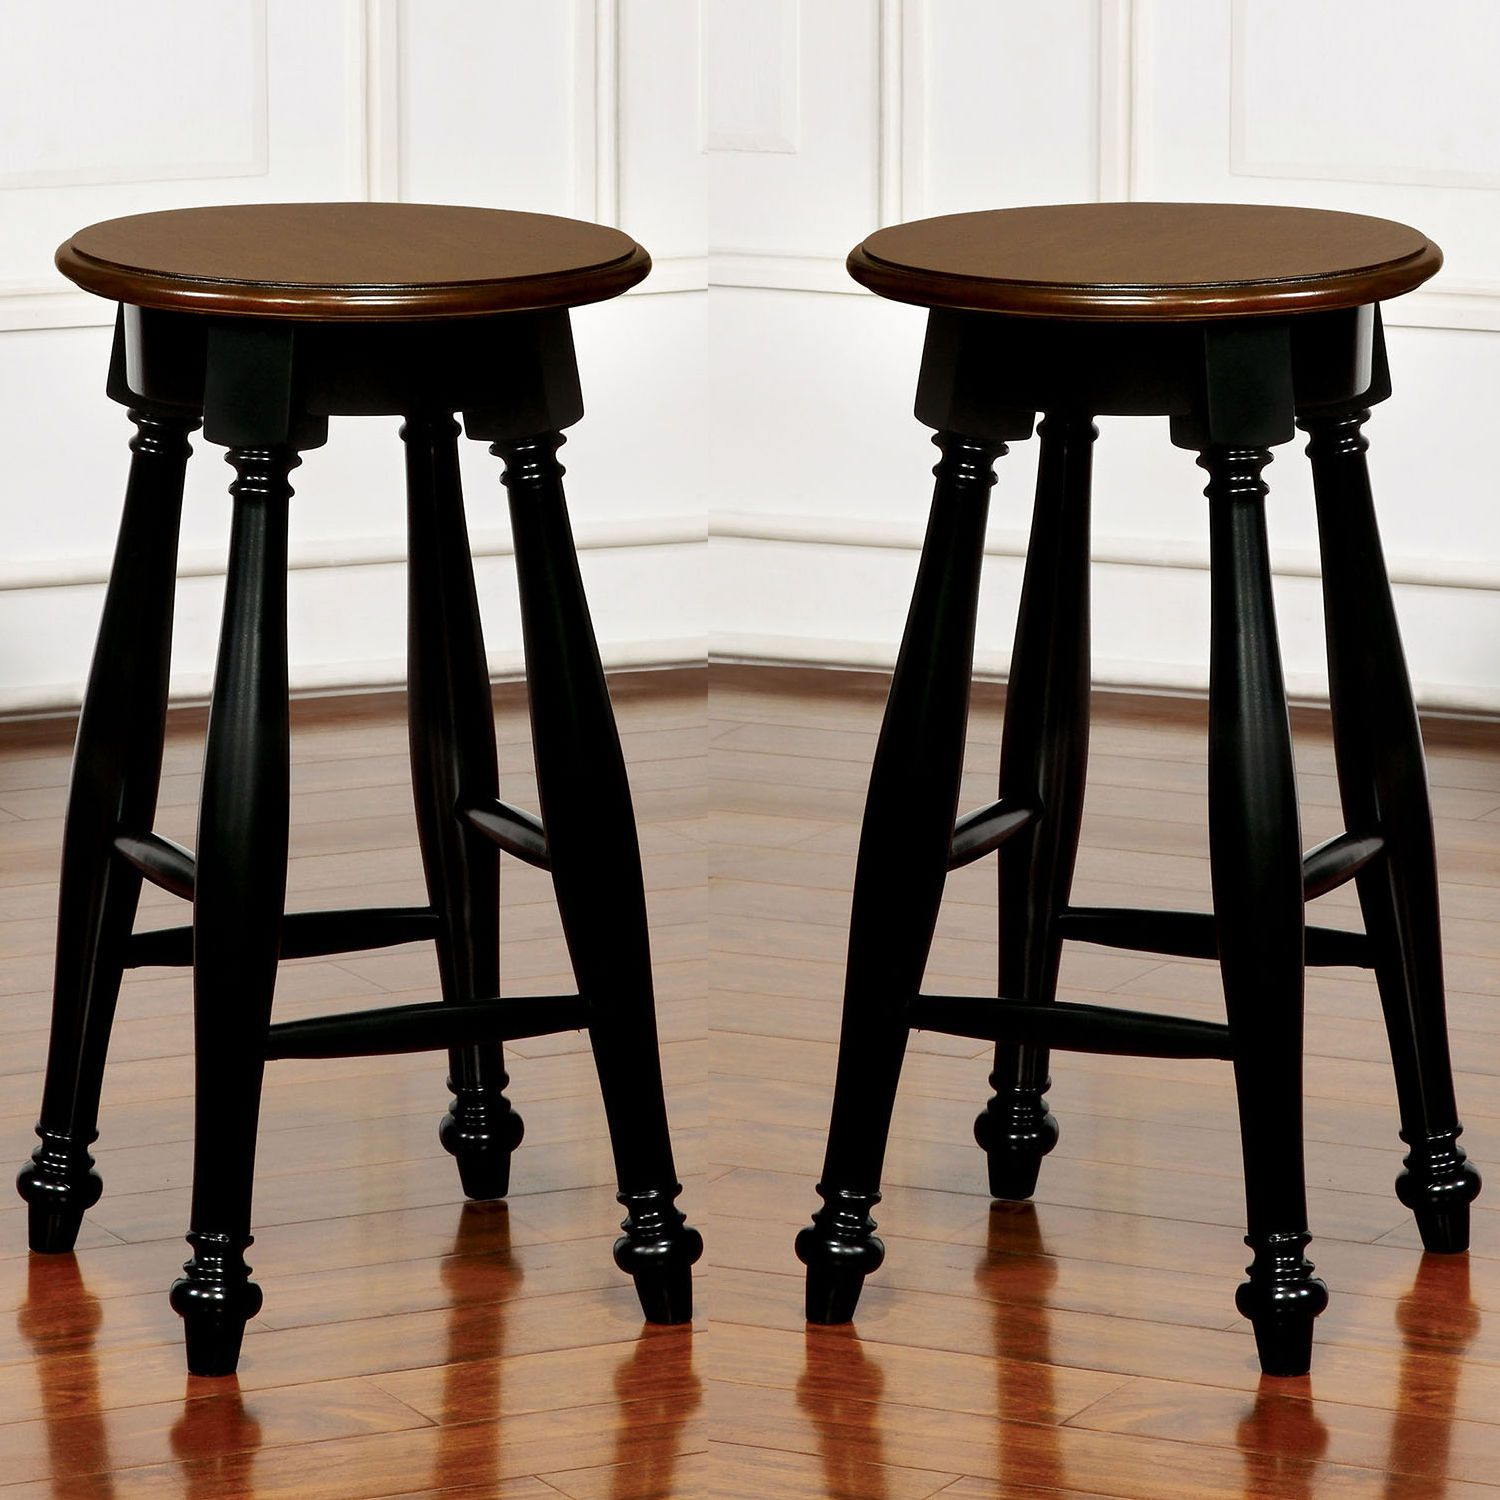 Pleasing Details About Kenley Counter Height Stools With Wood Seat Dailytribune Chair Design For Home Dailytribuneorg